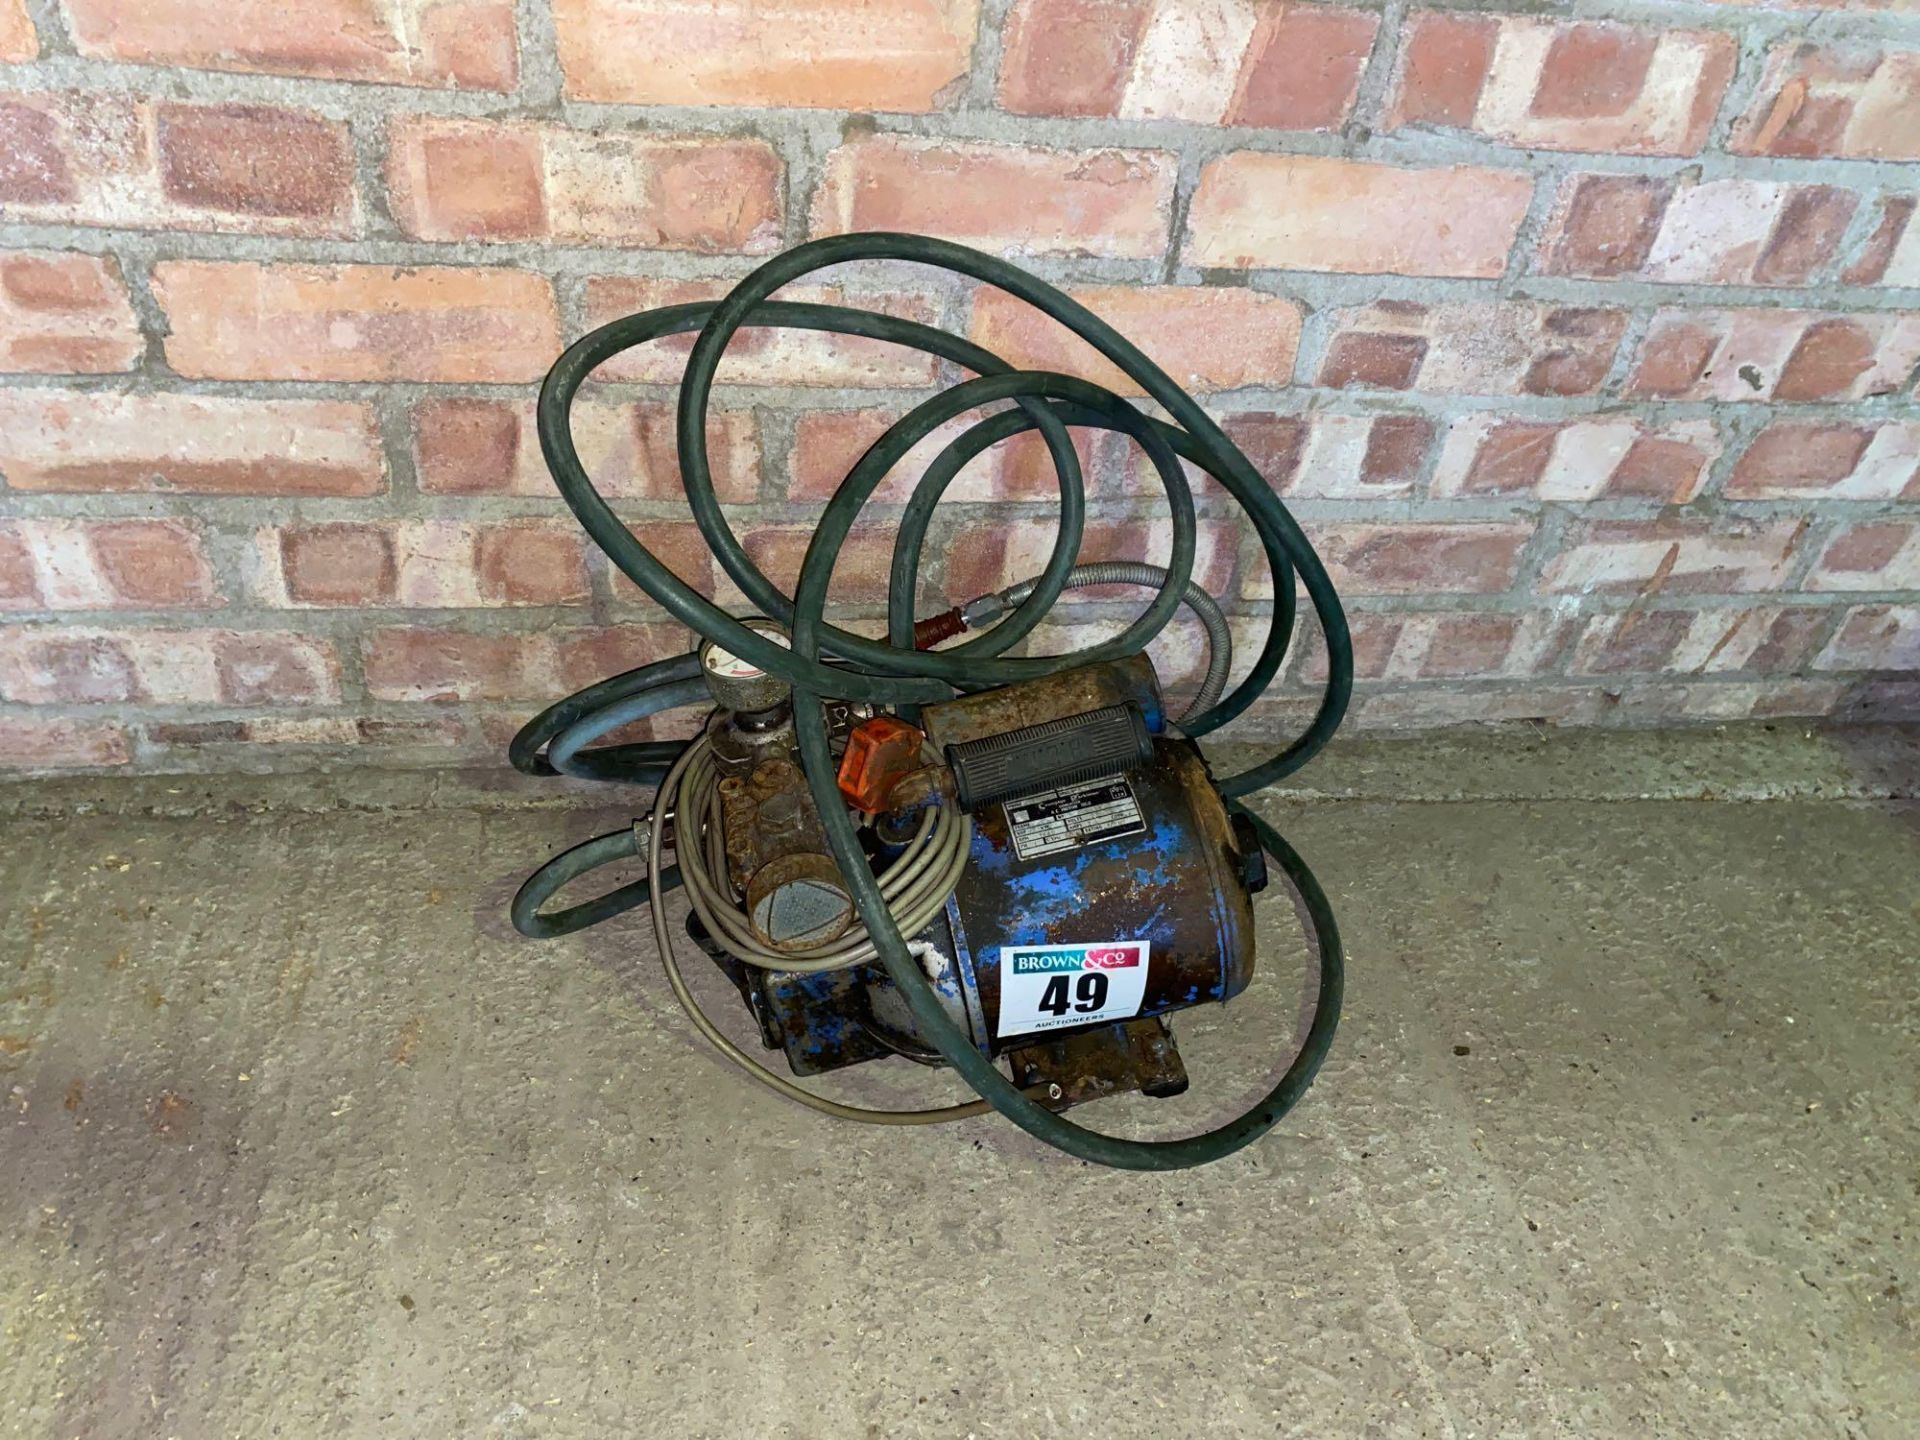 Crompton Parkinson Compressor, 240 volt for spares or repairs - Image 2 of 3